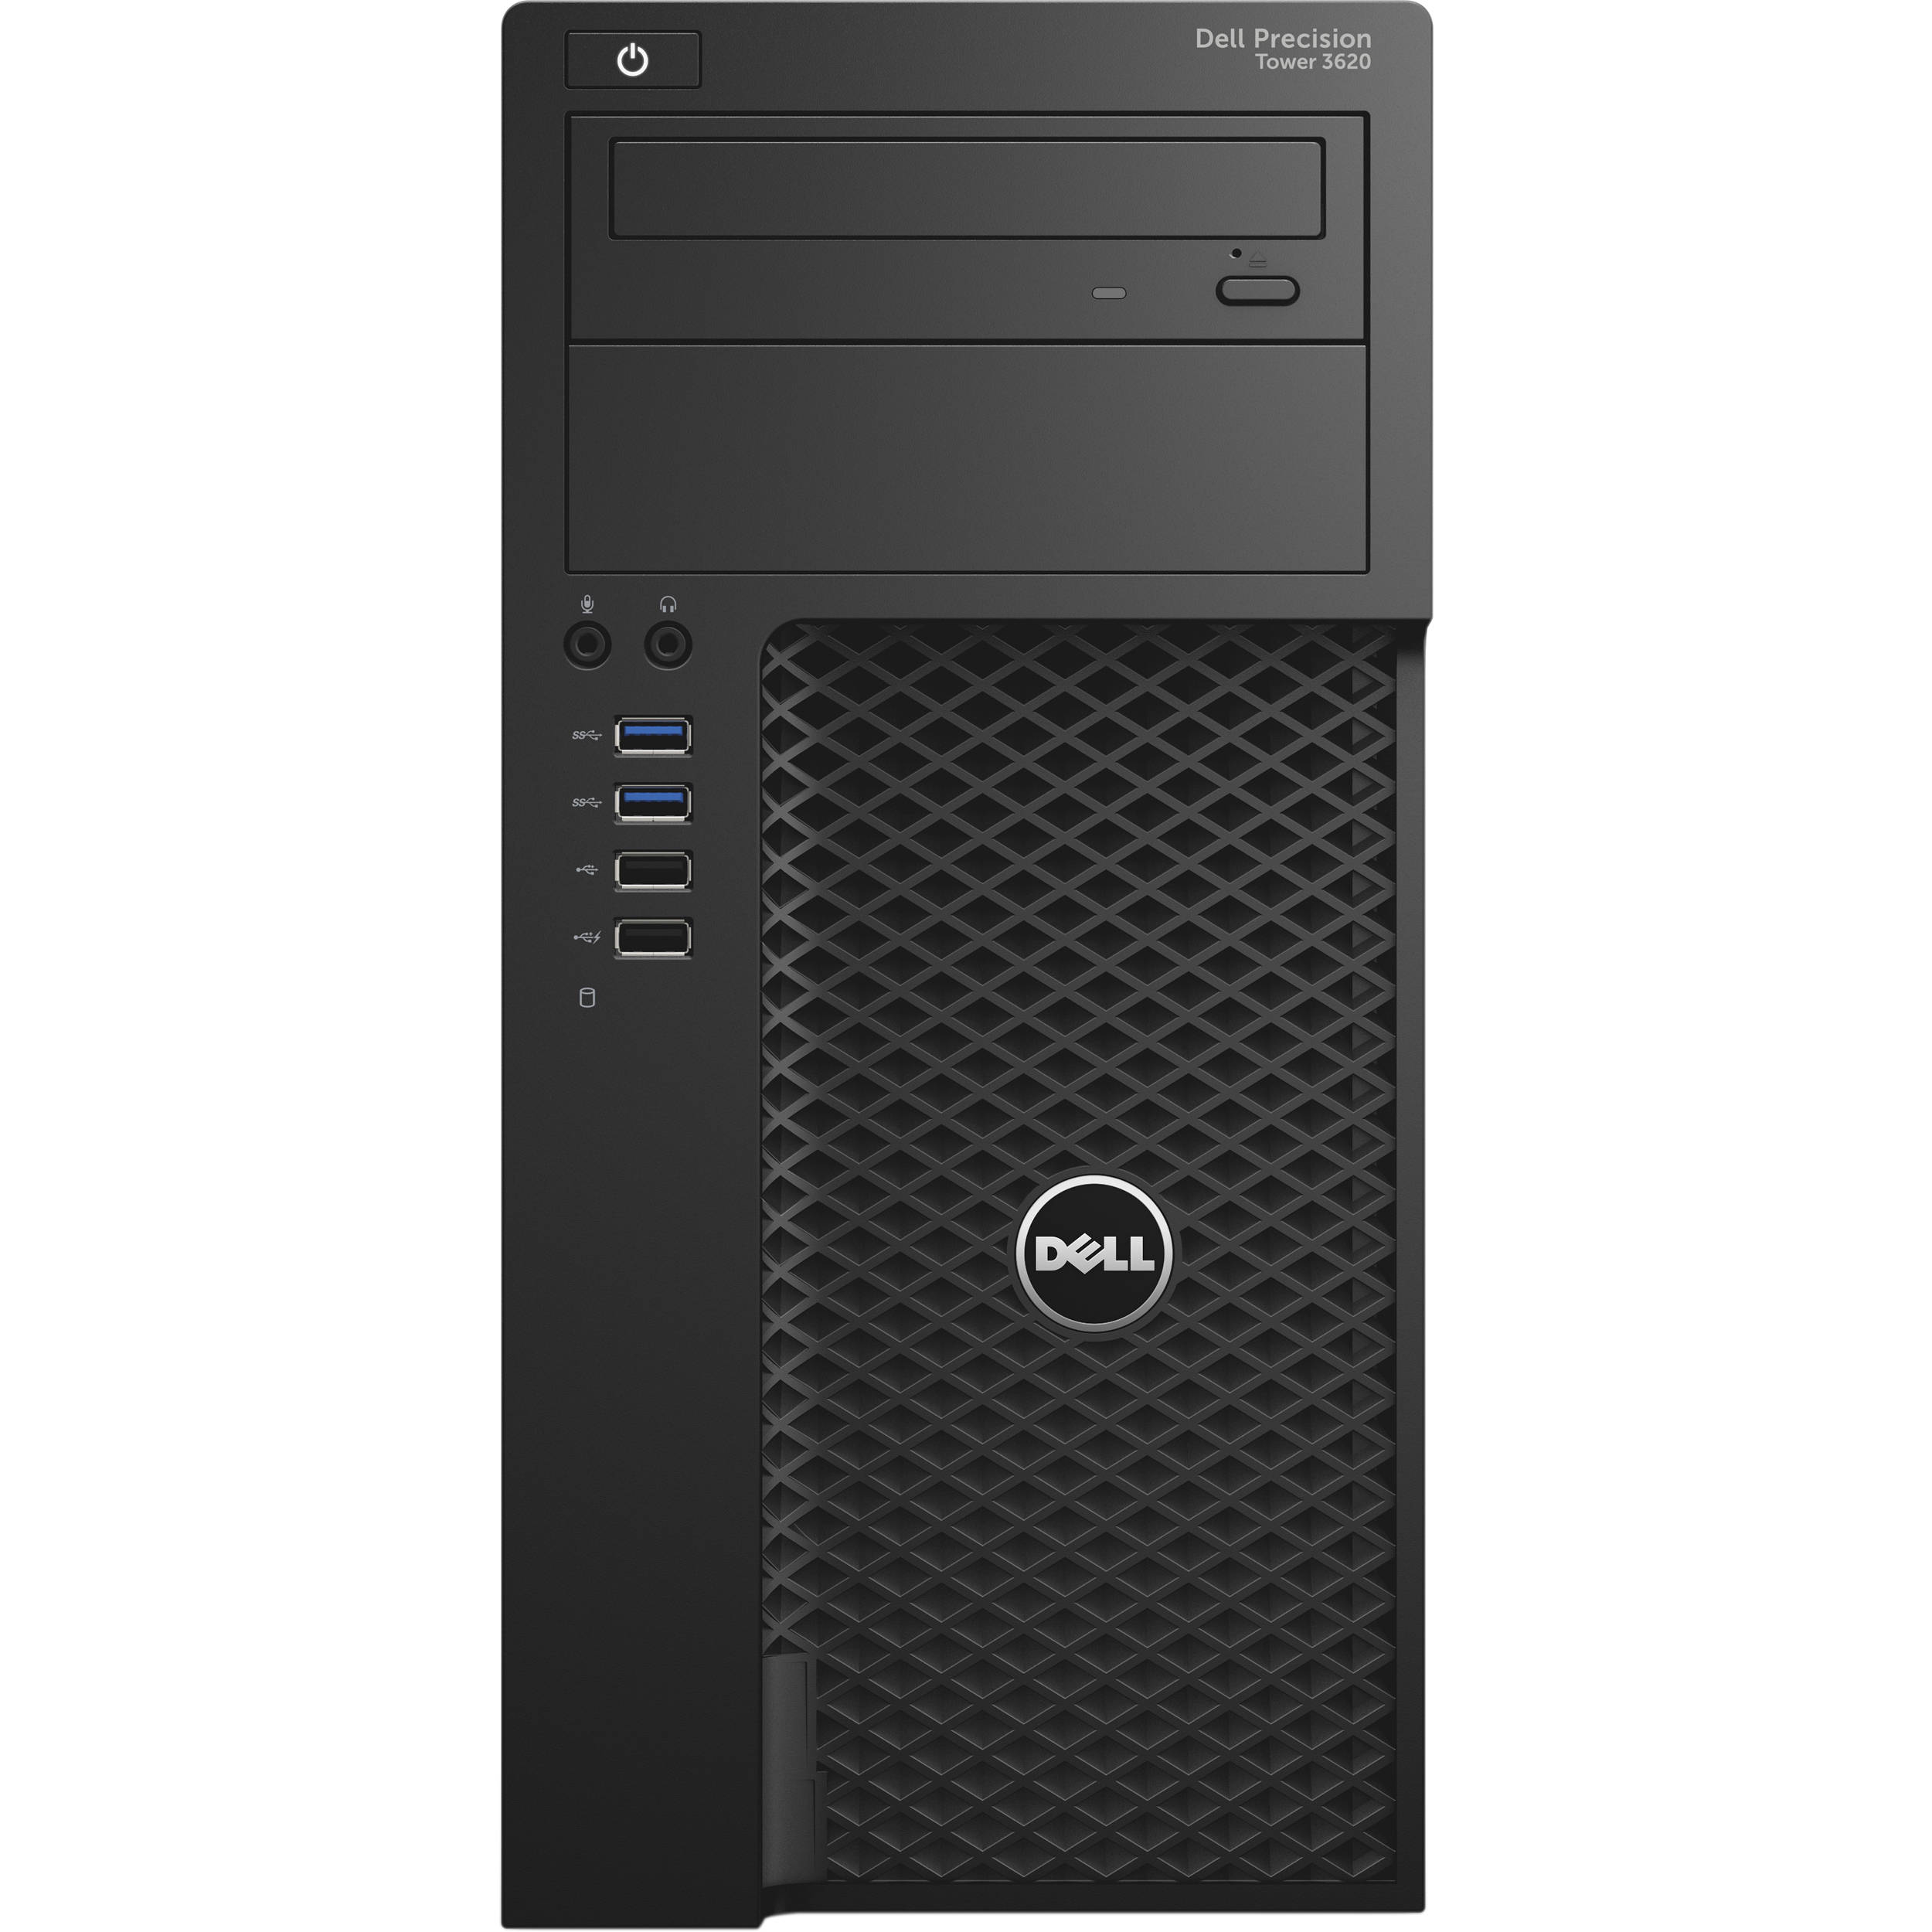 Dell computers for business